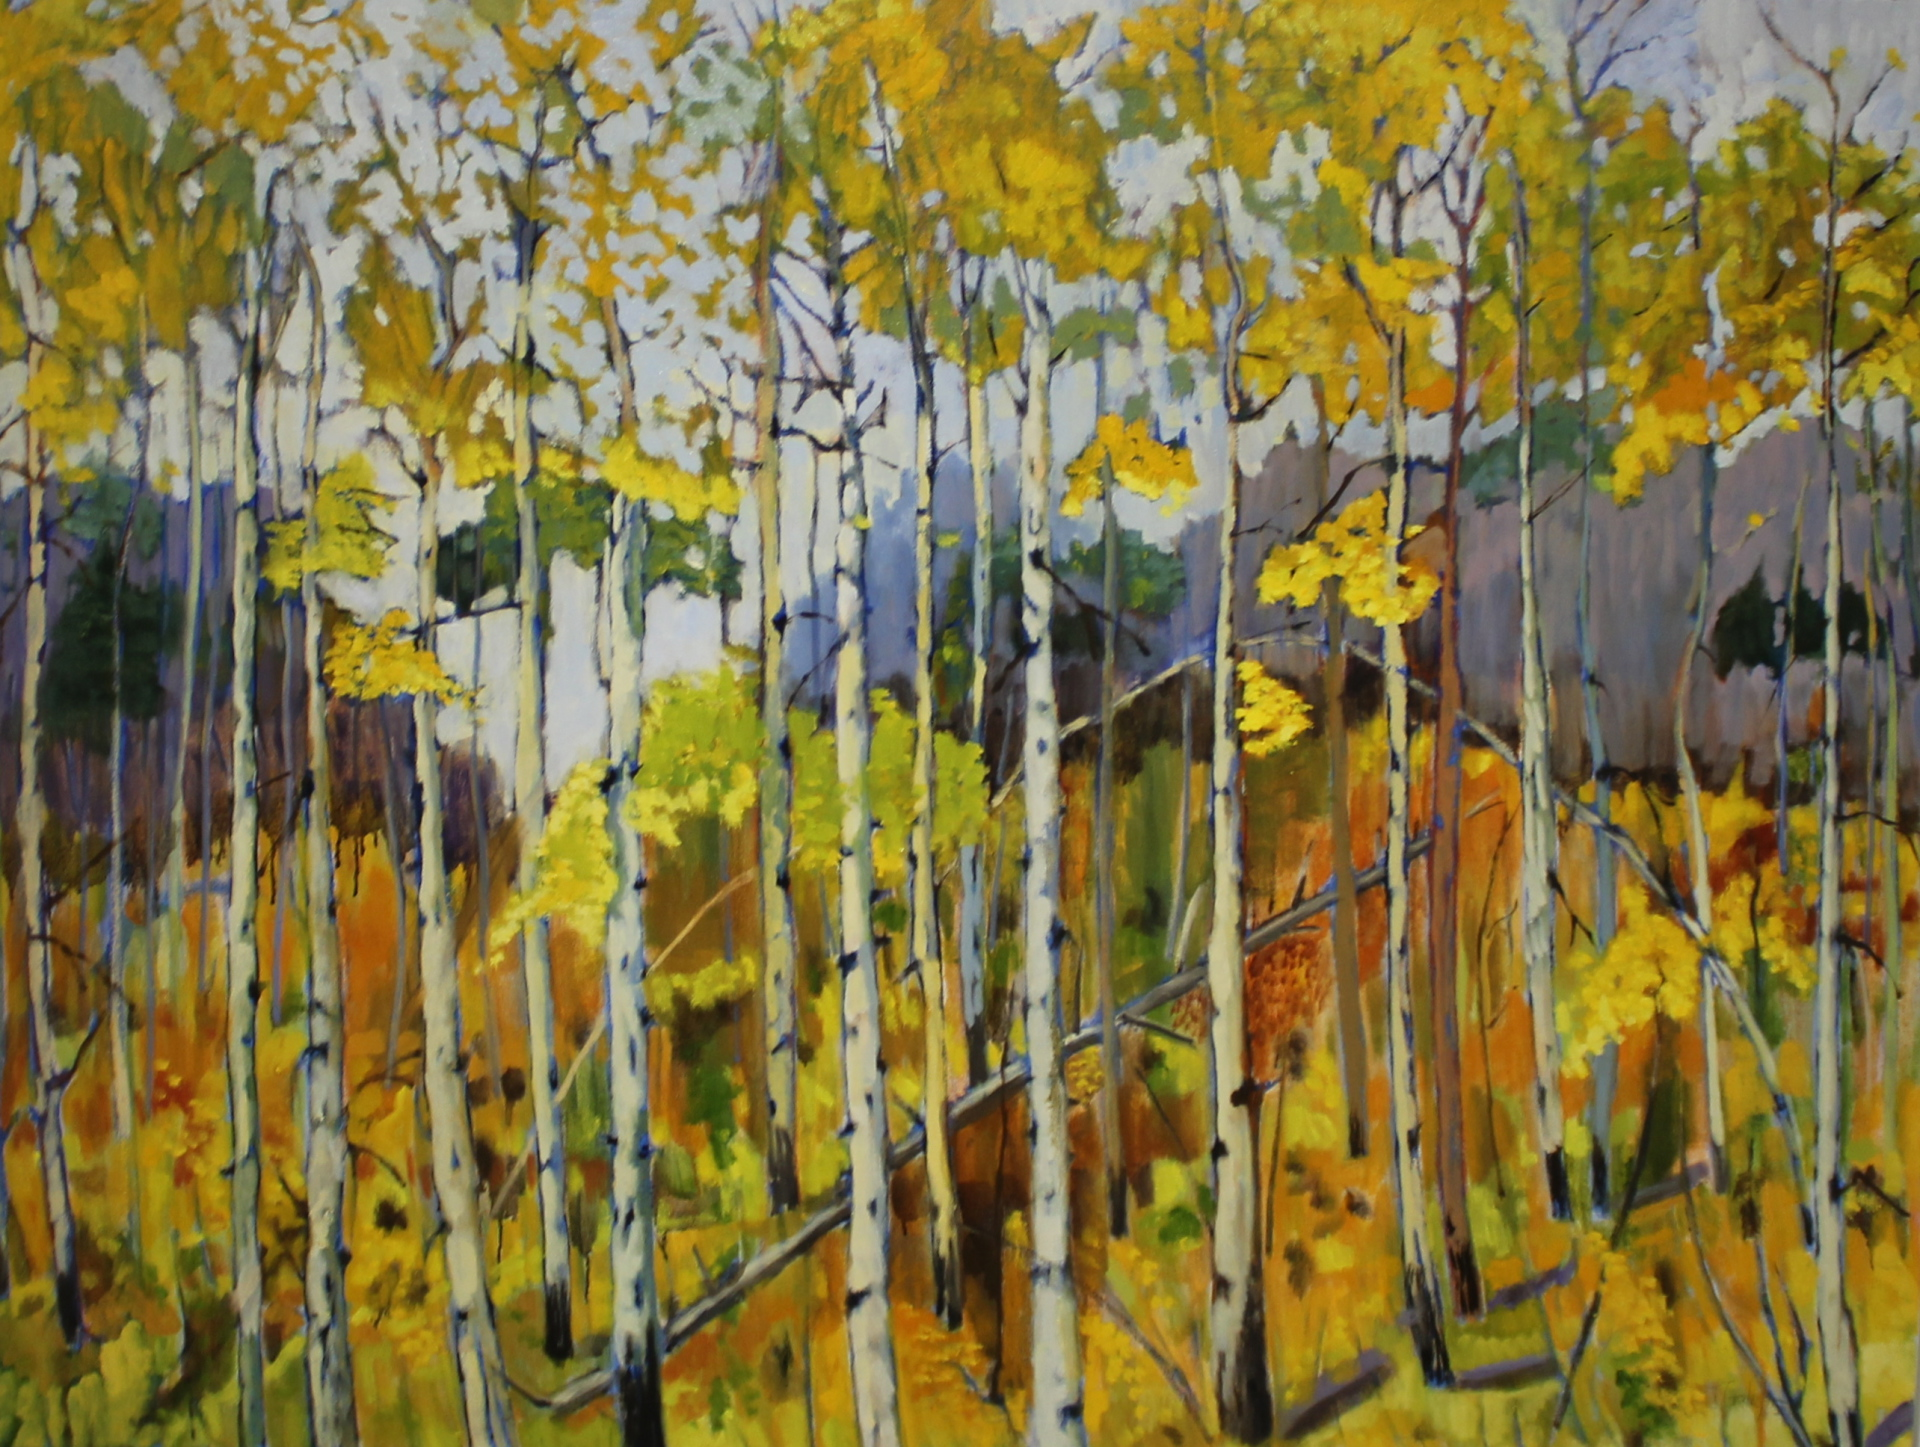 INDIAN SUMMER - 39X52 - OIL ON CANVAS - 2015